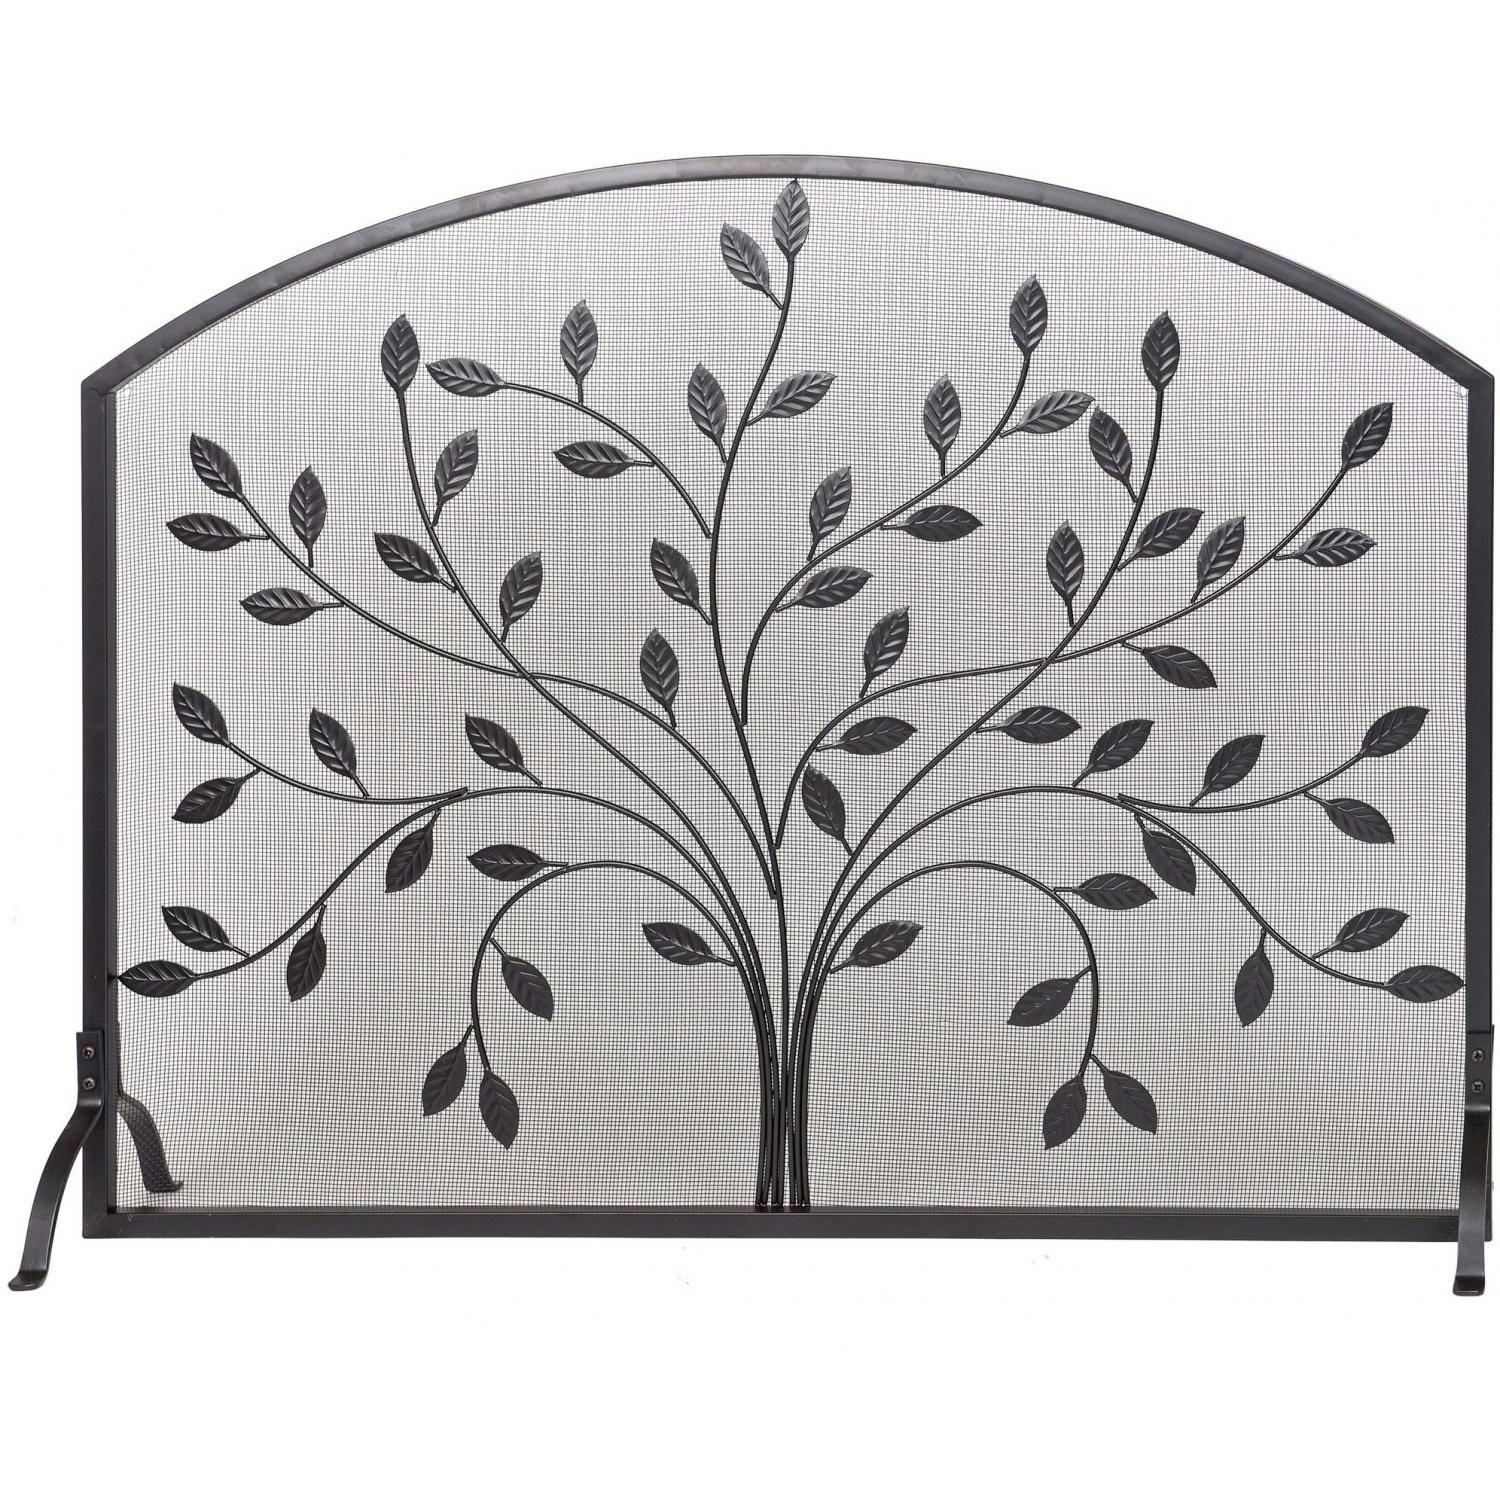 Picture of Alpine Flame 44-Inch Black Wrought Iron Fireplace Screen Panel With Leaf Design